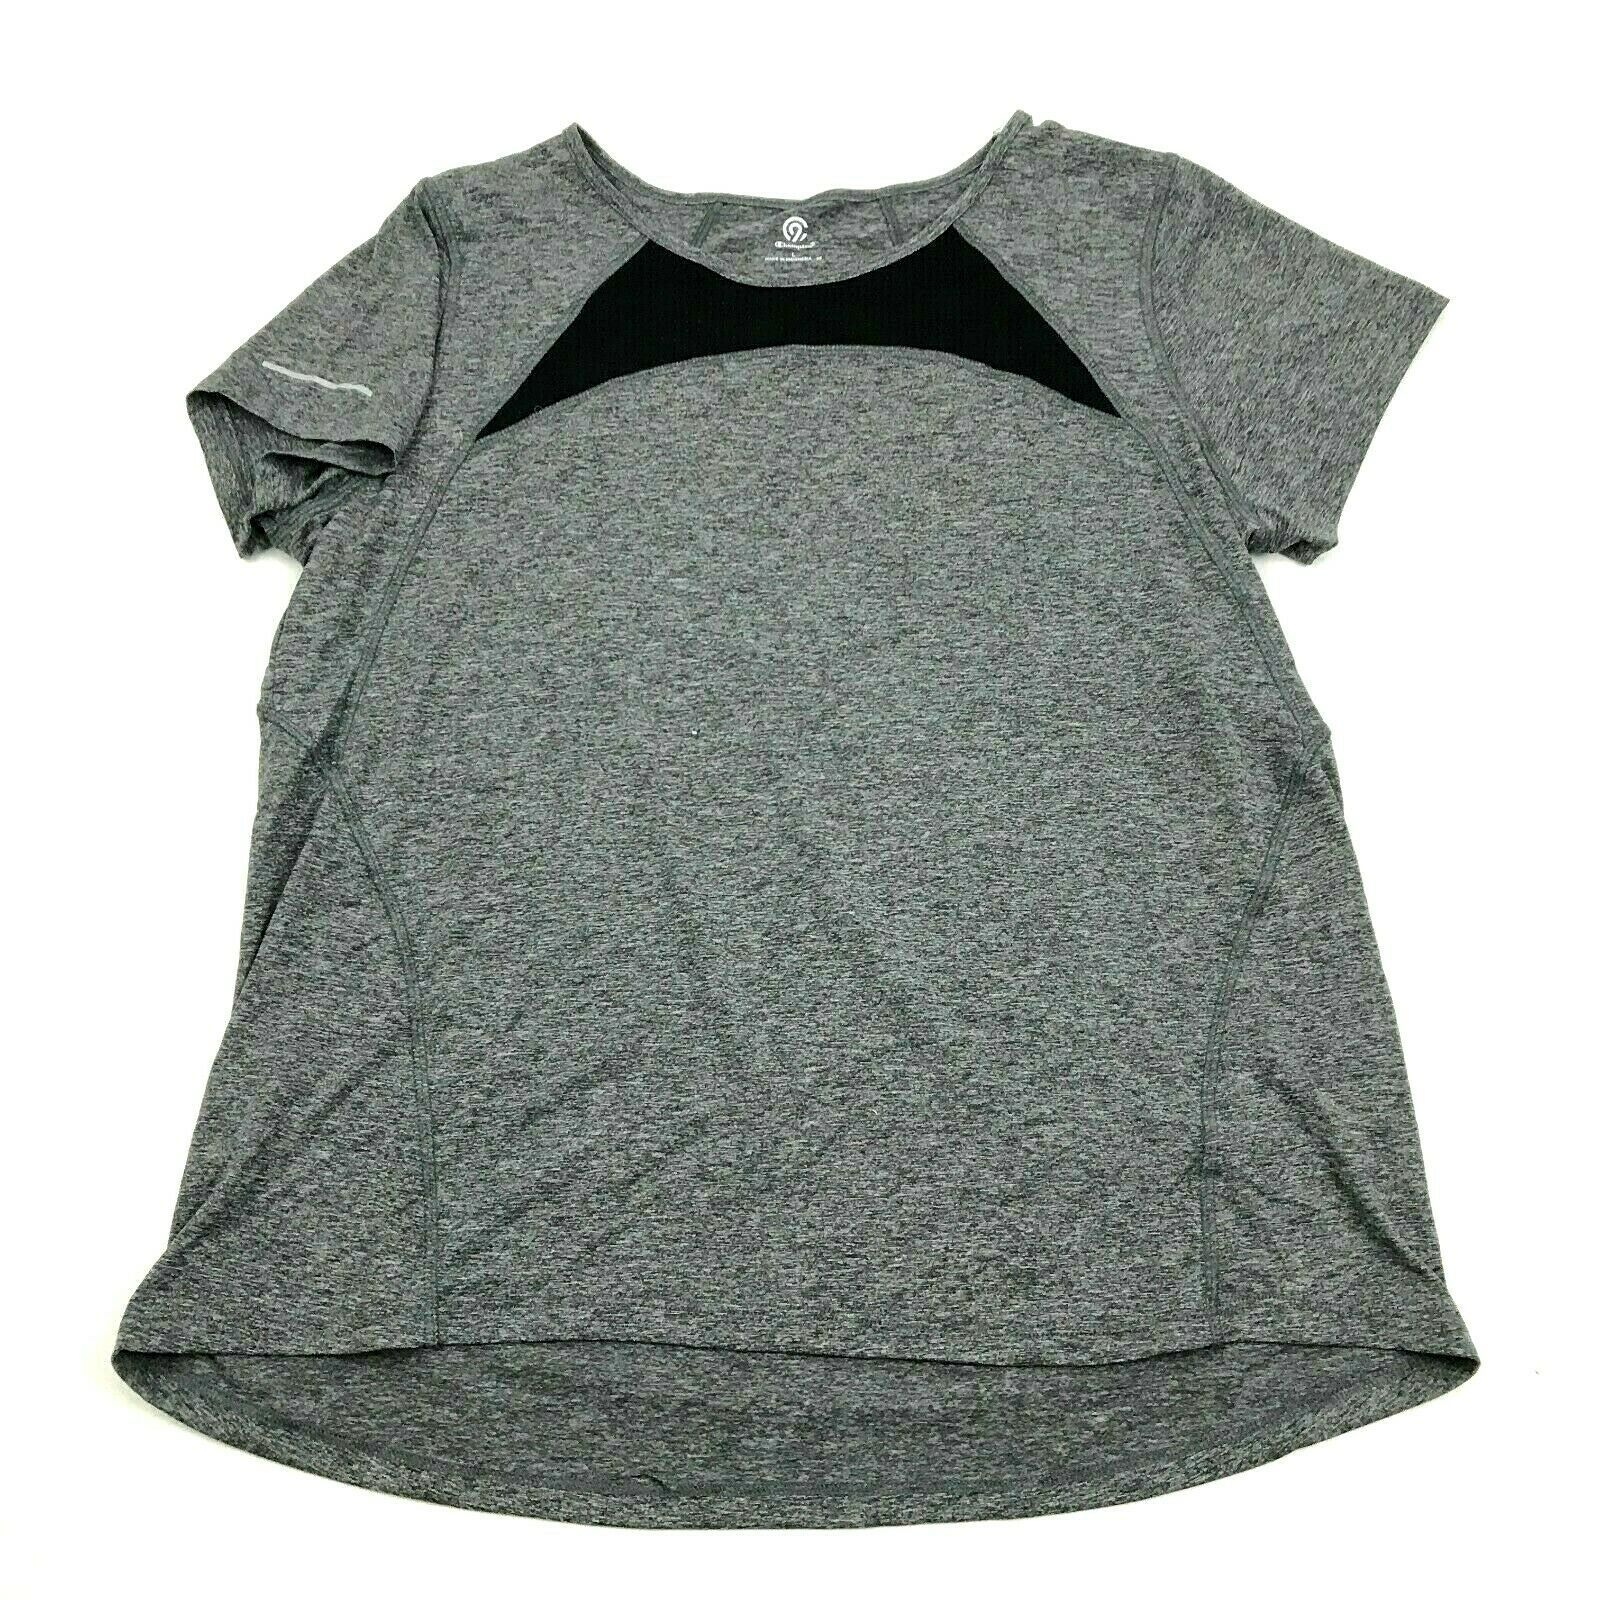 Primary image for CHAMPION Dry Fit Shirt Women's Size Large Loose Fit Tee Athleisure Active Wear